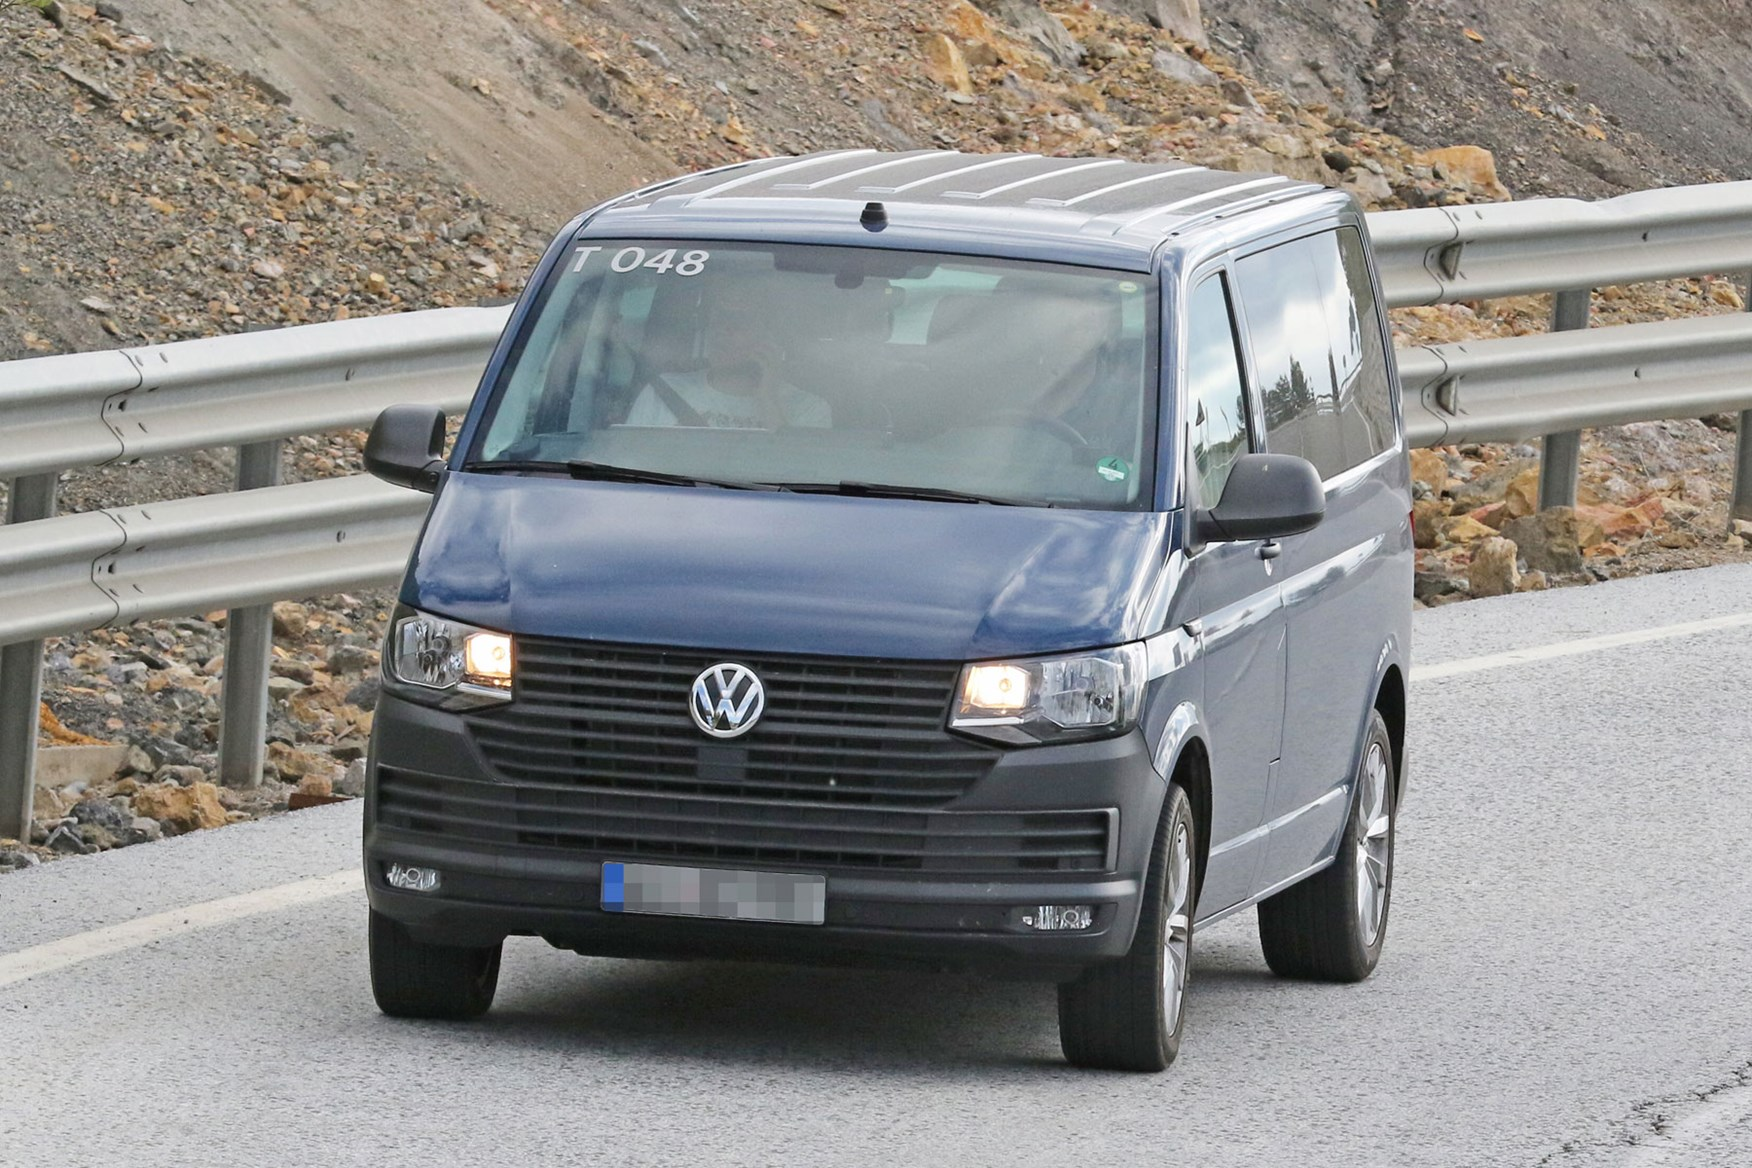 vw transporter  facelift latest spy shots  info  revised van parkers